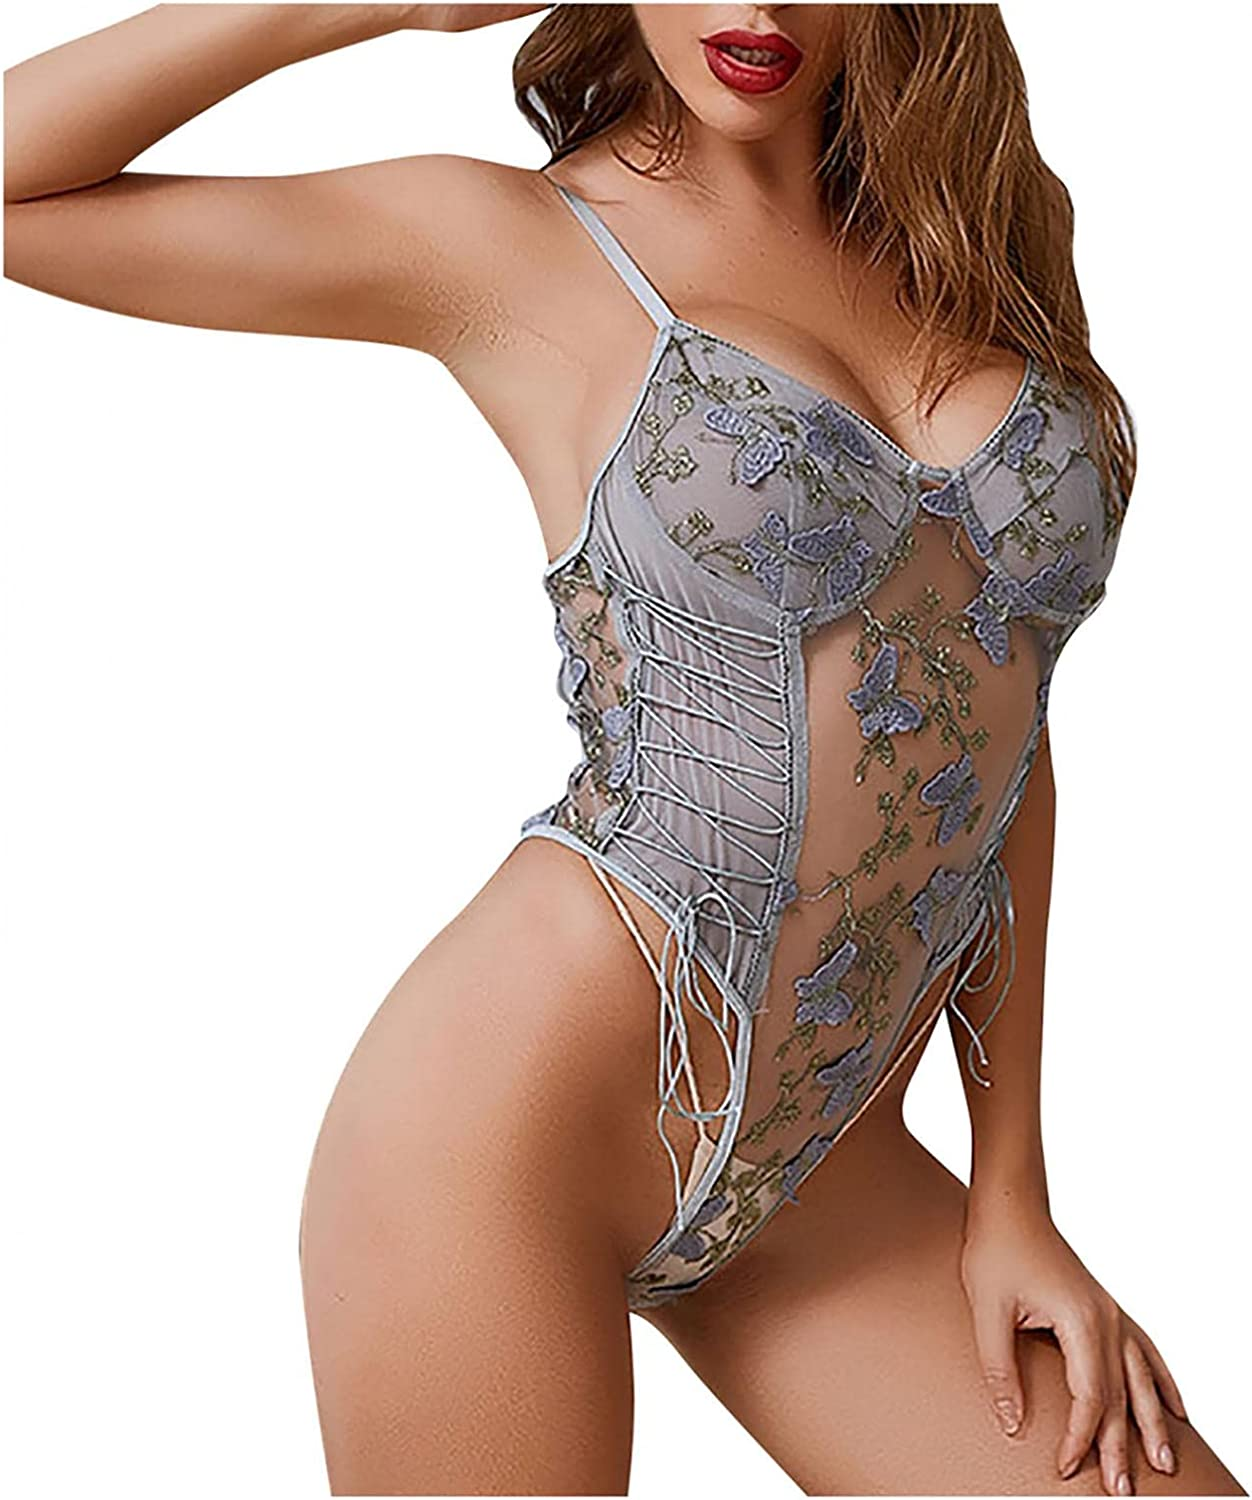 Women Lingerie Sexy Lace One Piece Bodysuit Short Jumpsuit Floral Print See Through Perspective Teddy Babydoll